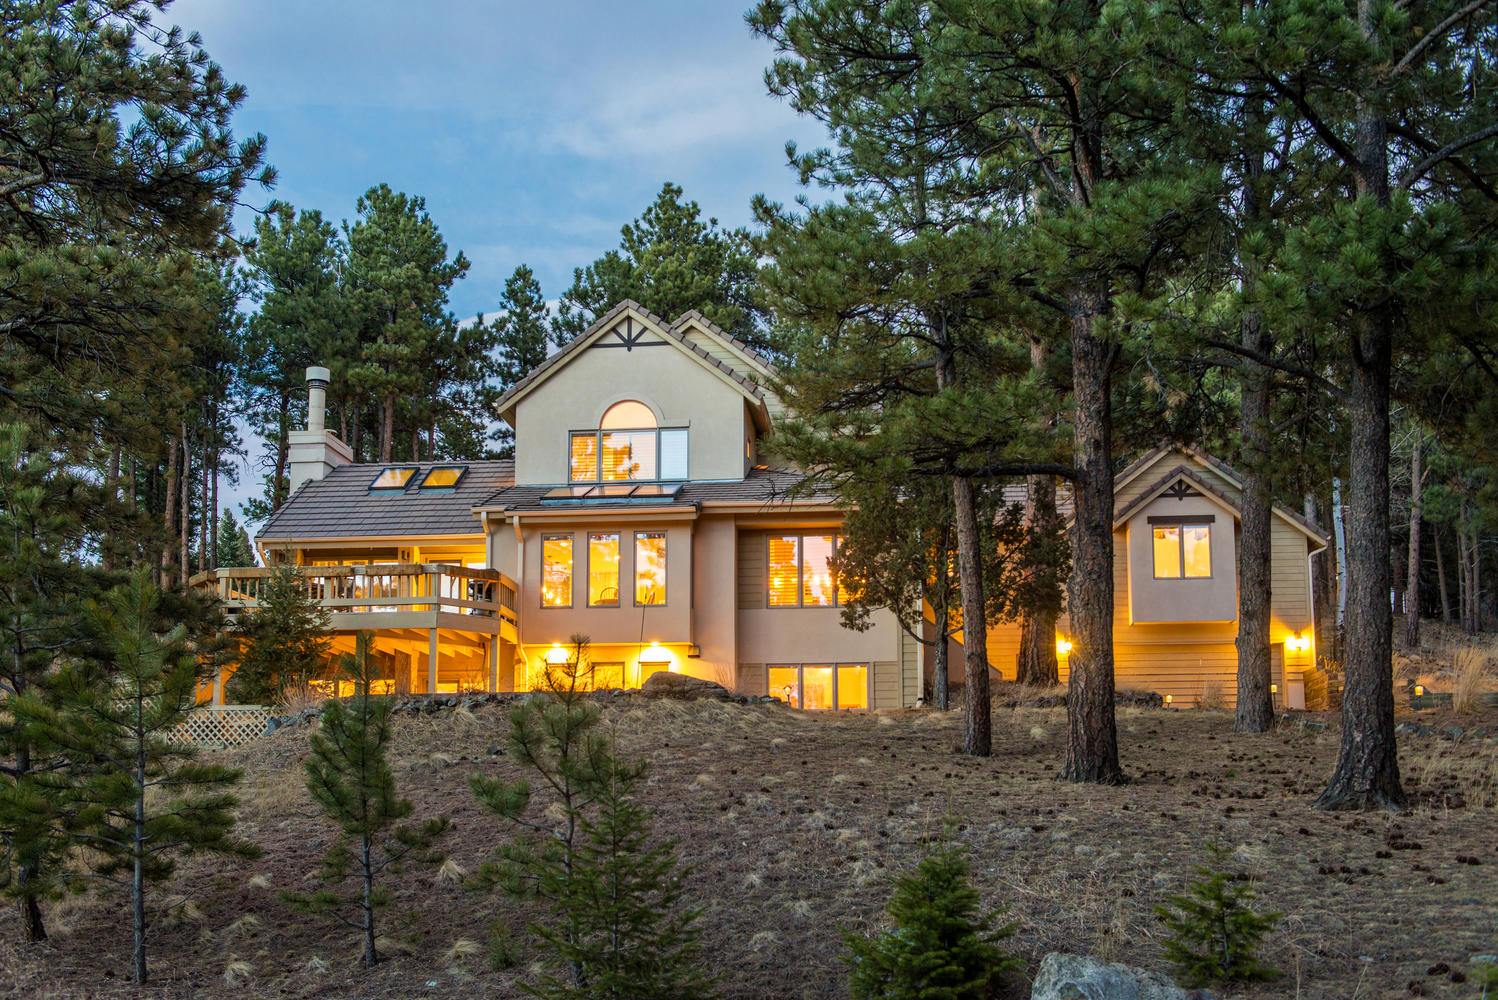 Casa Unifamiliar por un Venta en Quiet Setting with Snow Capped Mountain Views 978 Northridge Drive Golden, Colorado 80401 Estados Unidos